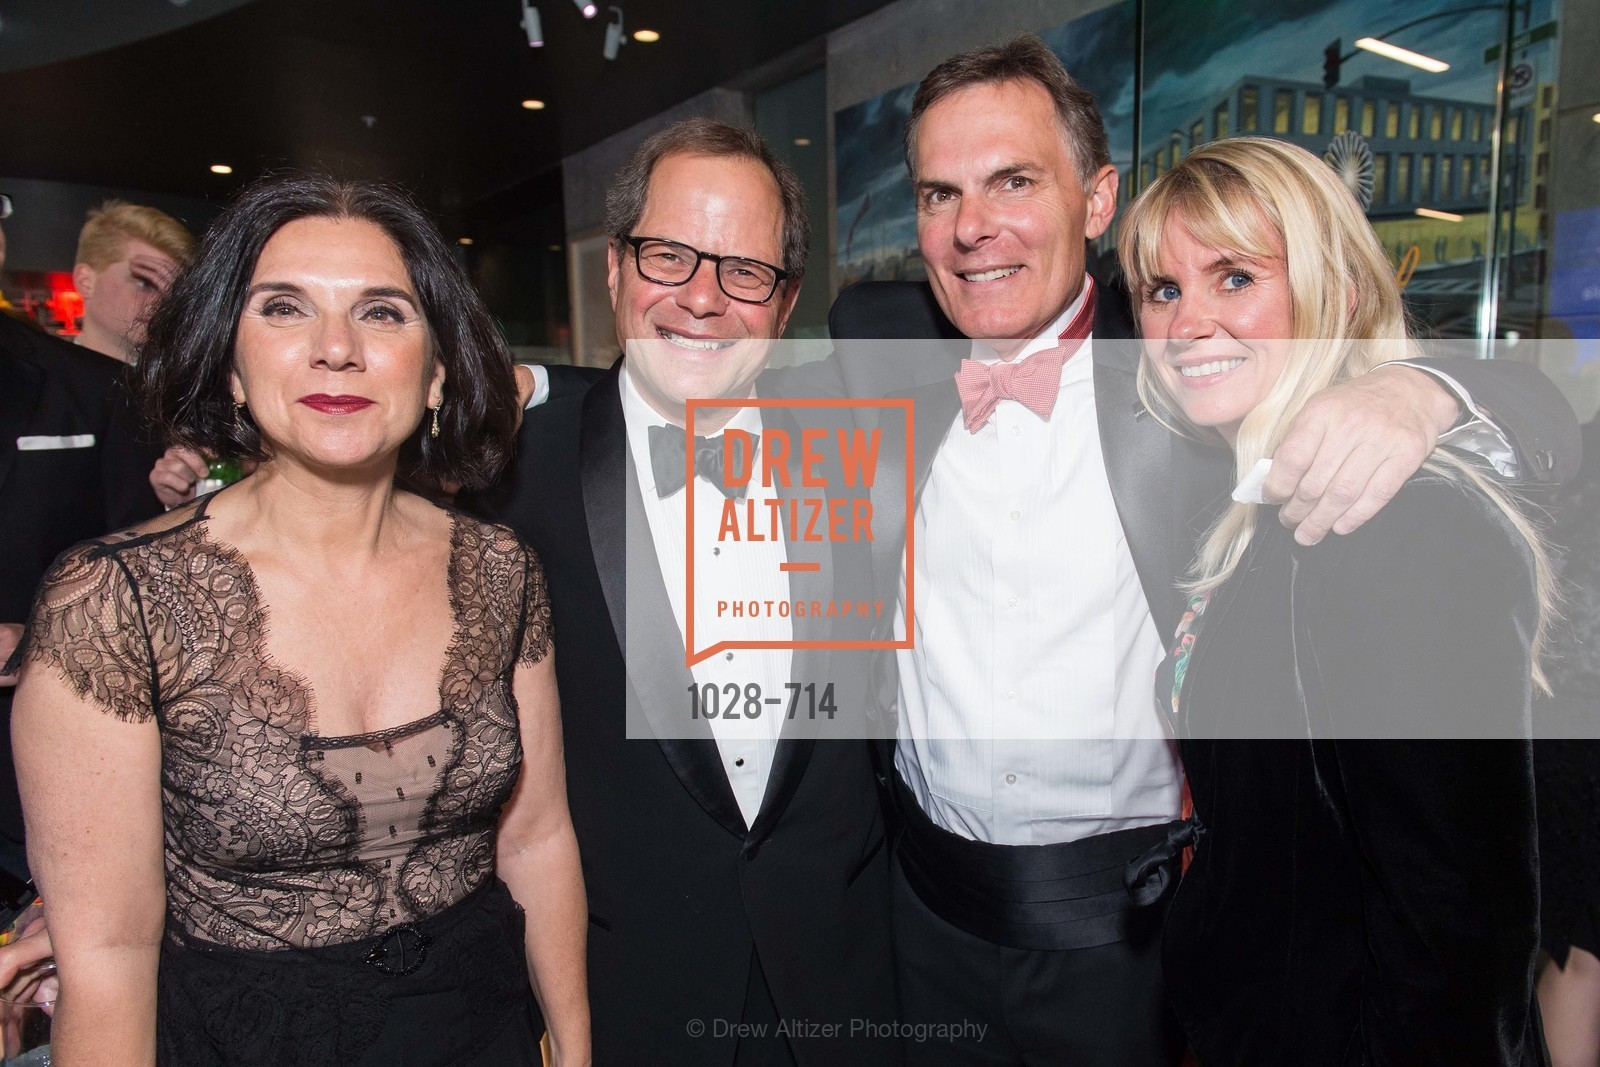 Teresa Pantaleo, Randall Kline, Mark Cavagnero, Ive Haugeland, SFJAZZ Gala 2015 Honors Joni Mitchell with Lifetime Achievement Award, US, May 9th, 2015,Drew Altizer, Drew Altizer Photography, full-service agency, private events, San Francisco photographer, photographer california